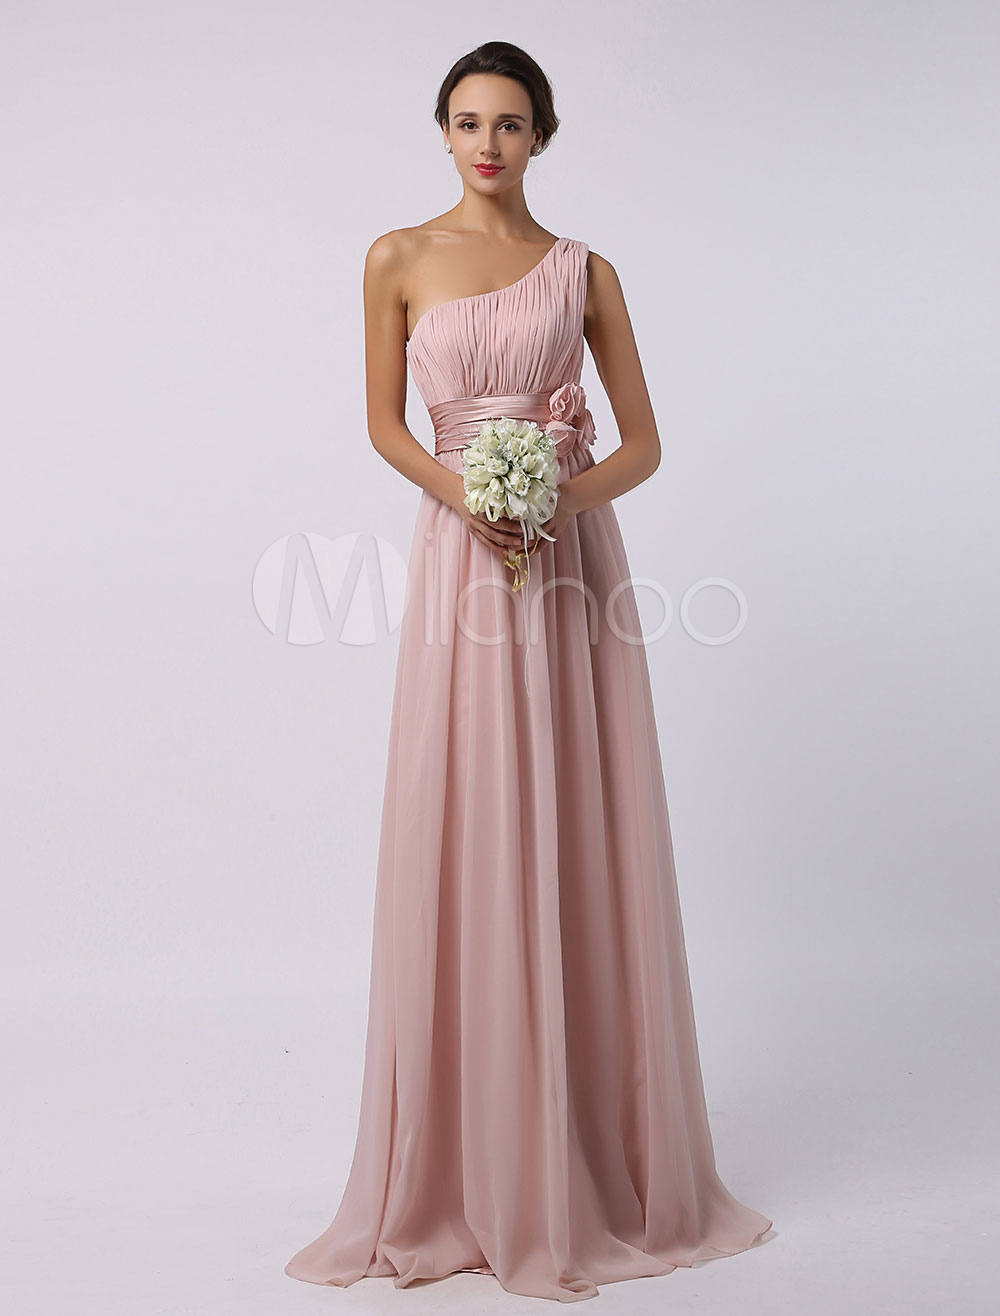 Peach Bridesmaid Dress Long Chiffon Floor Length One Shoulder A Line Waist Flower Wedding Party Dresses